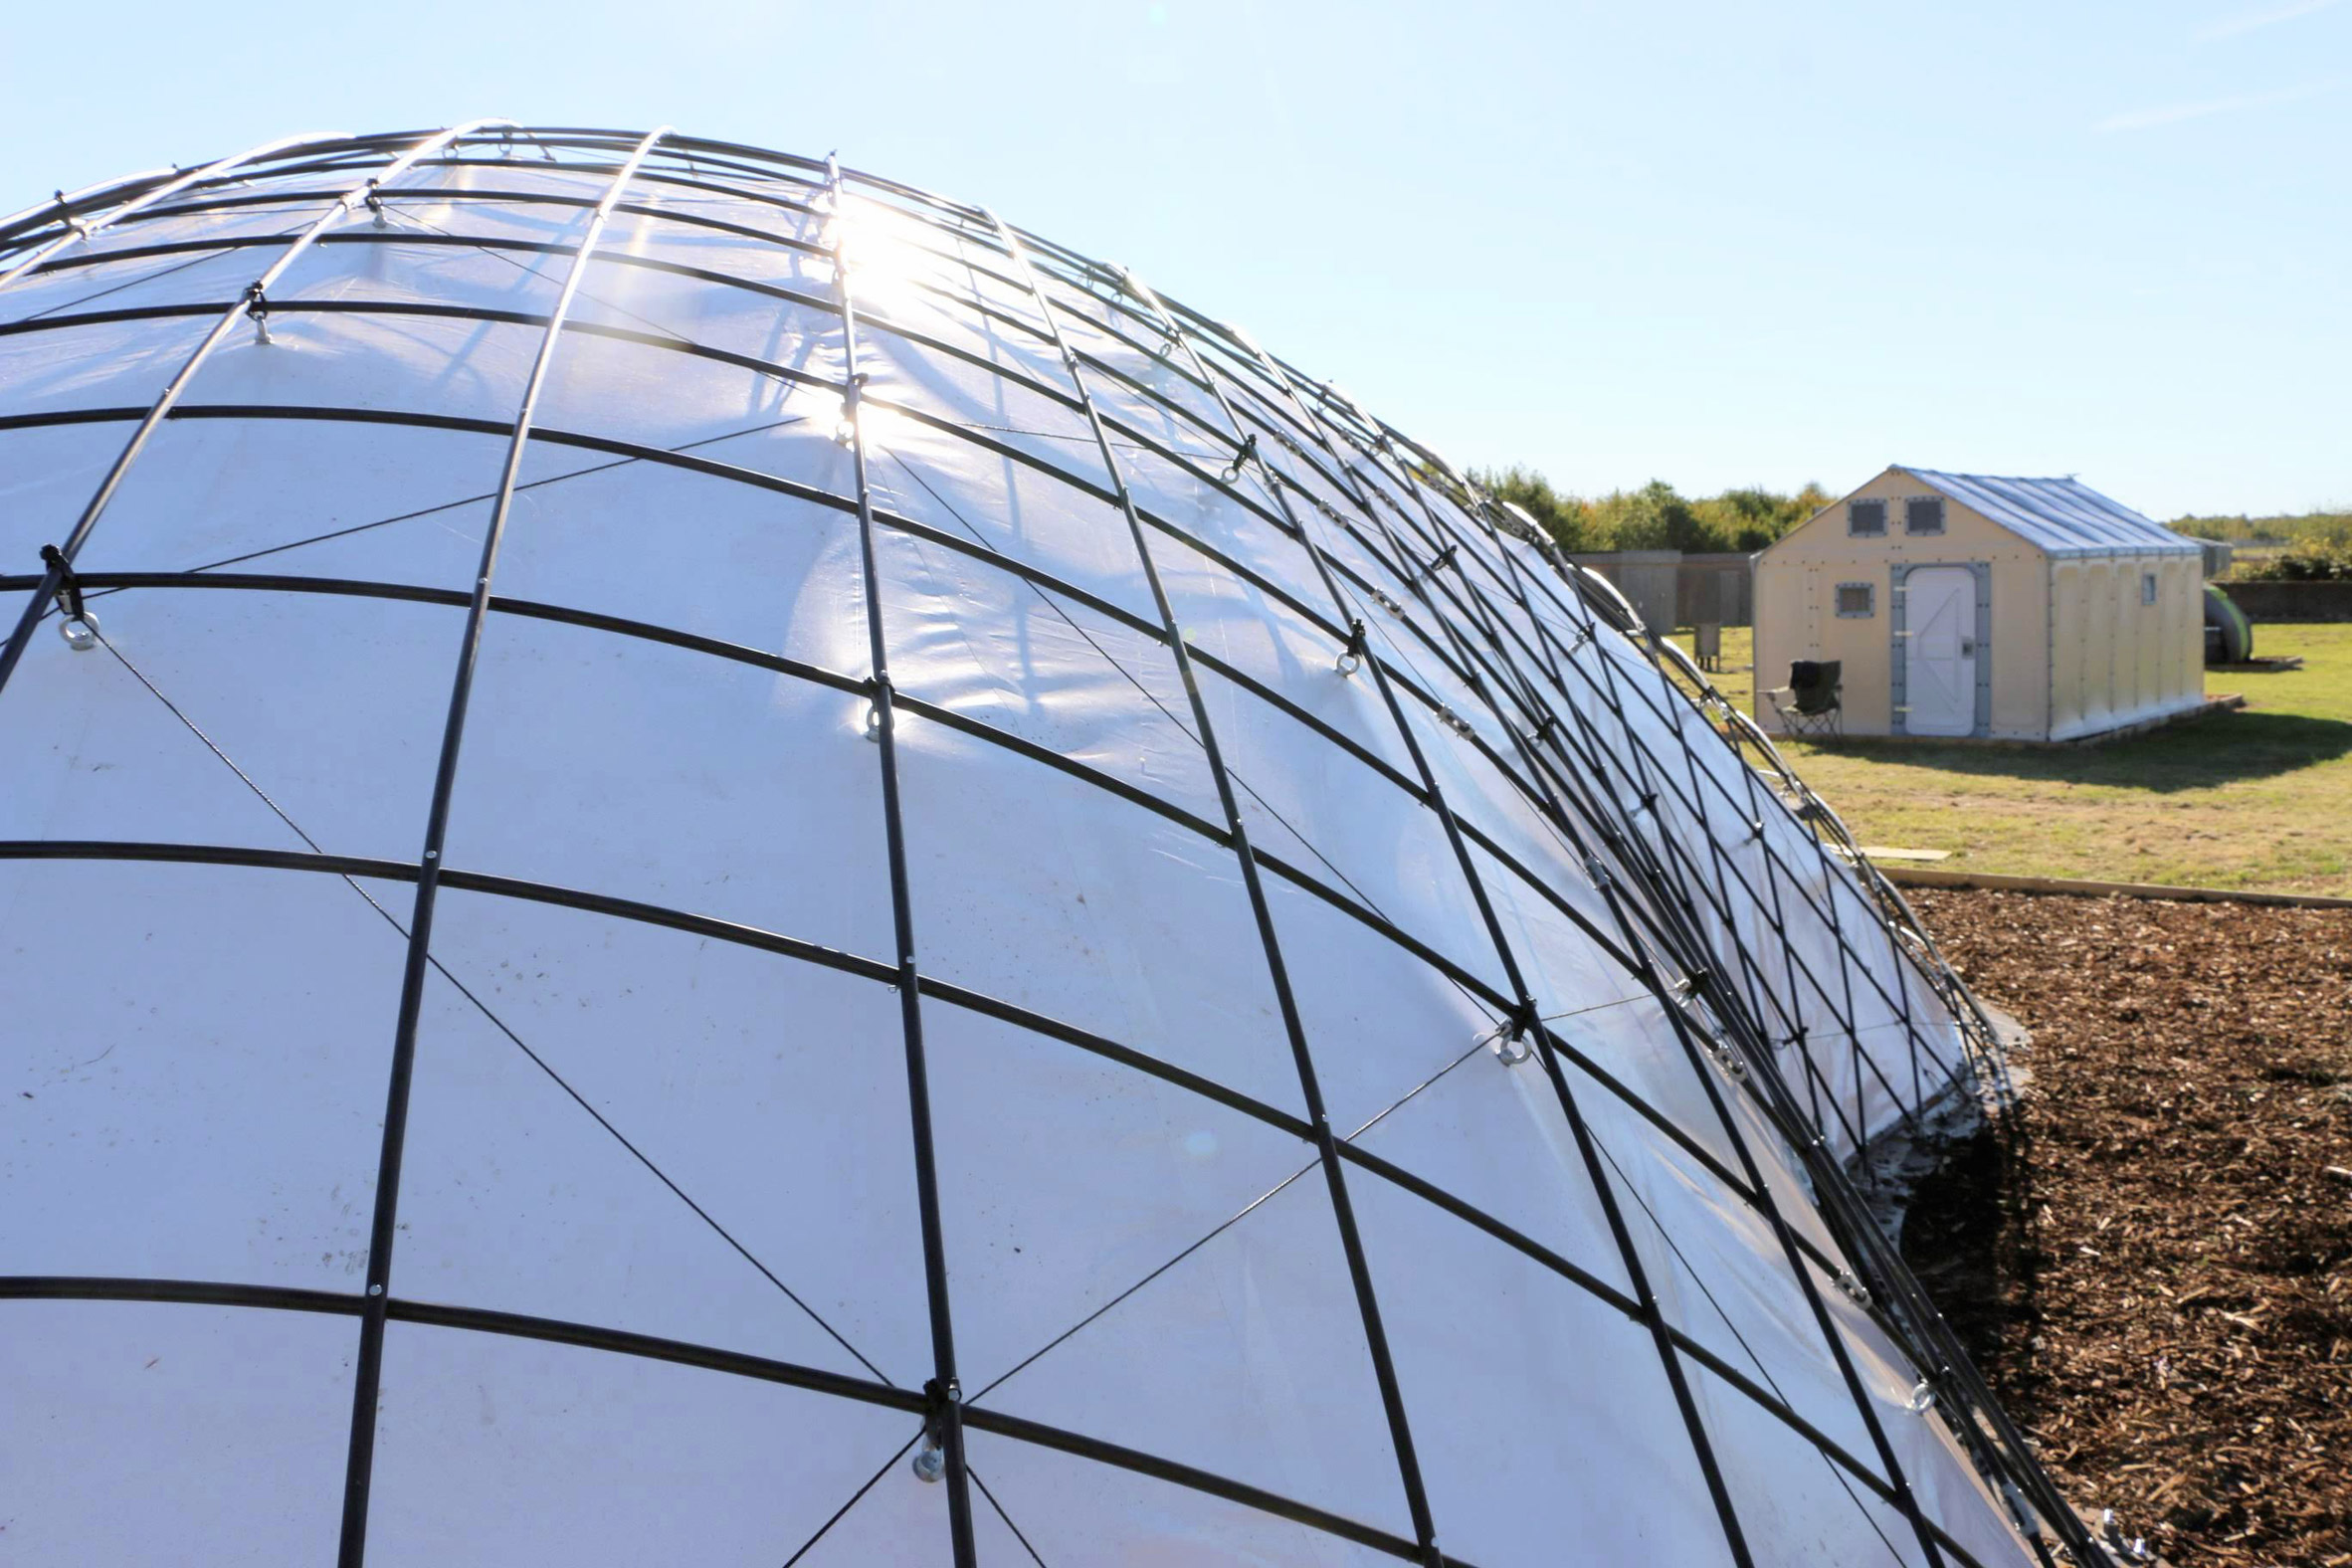 SheltAir gridshell can be inflated in 8 hours to isolate coronavirus patients